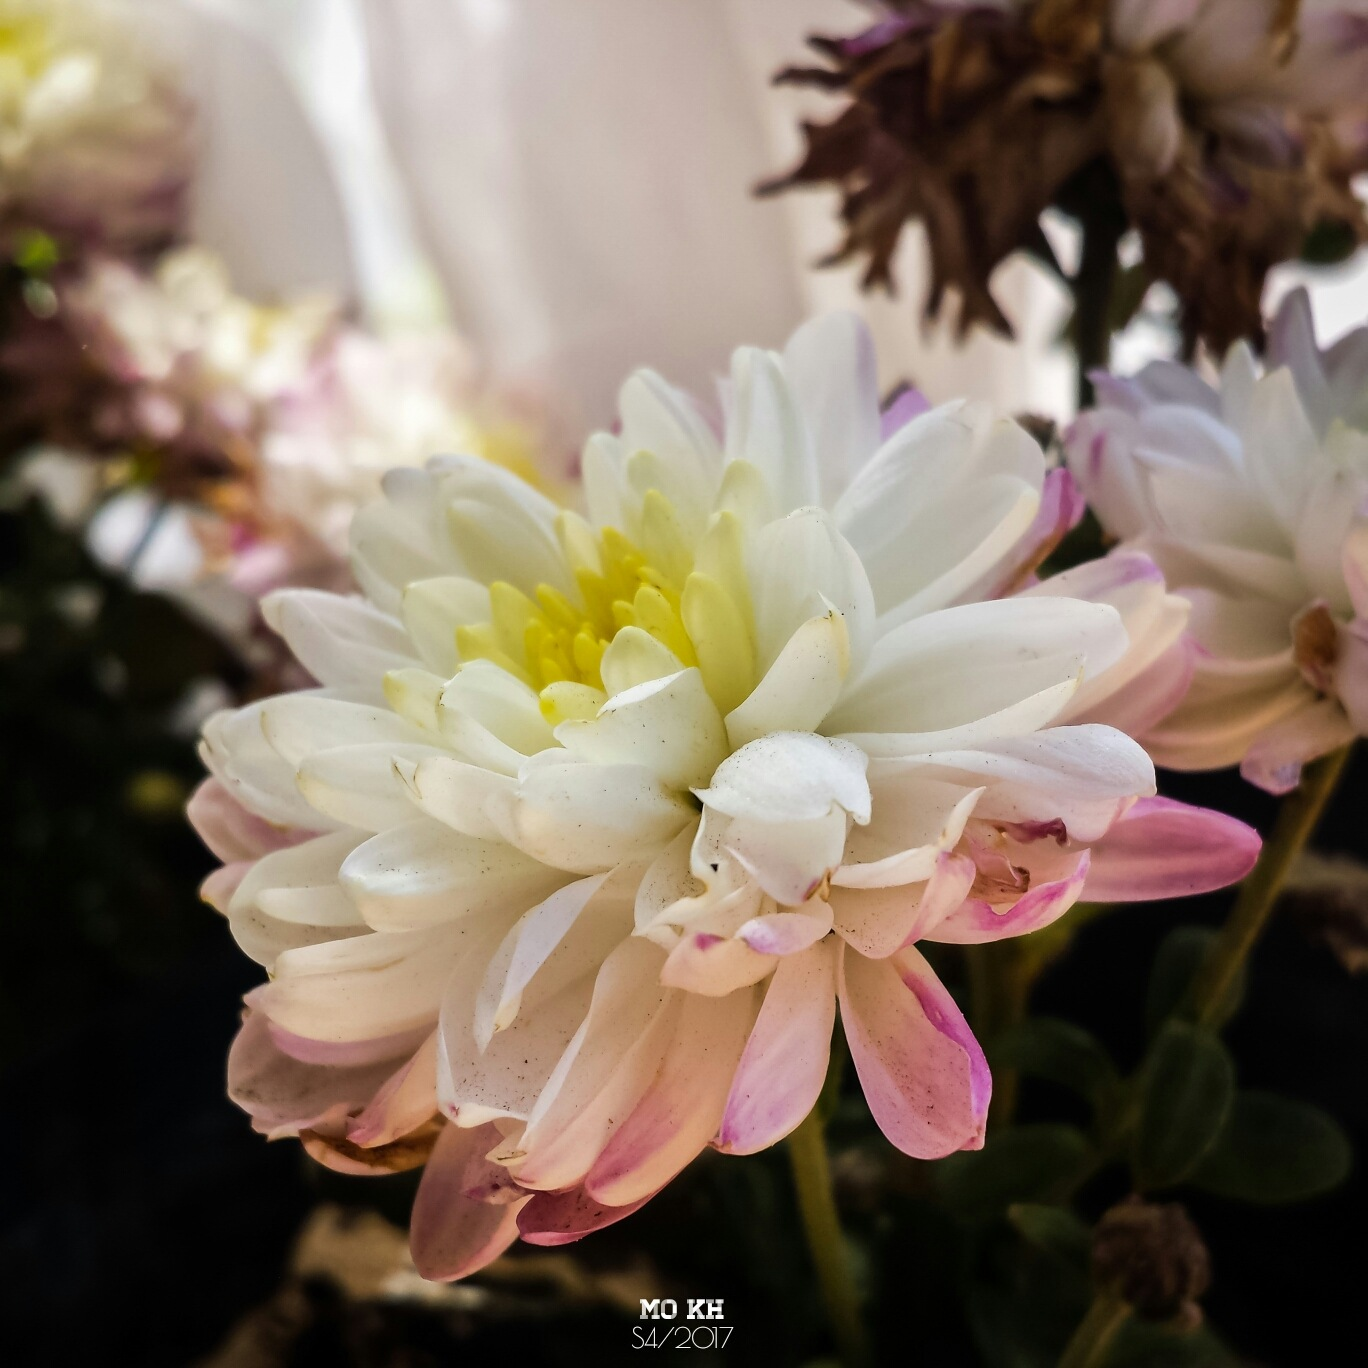 A flower by MO KH